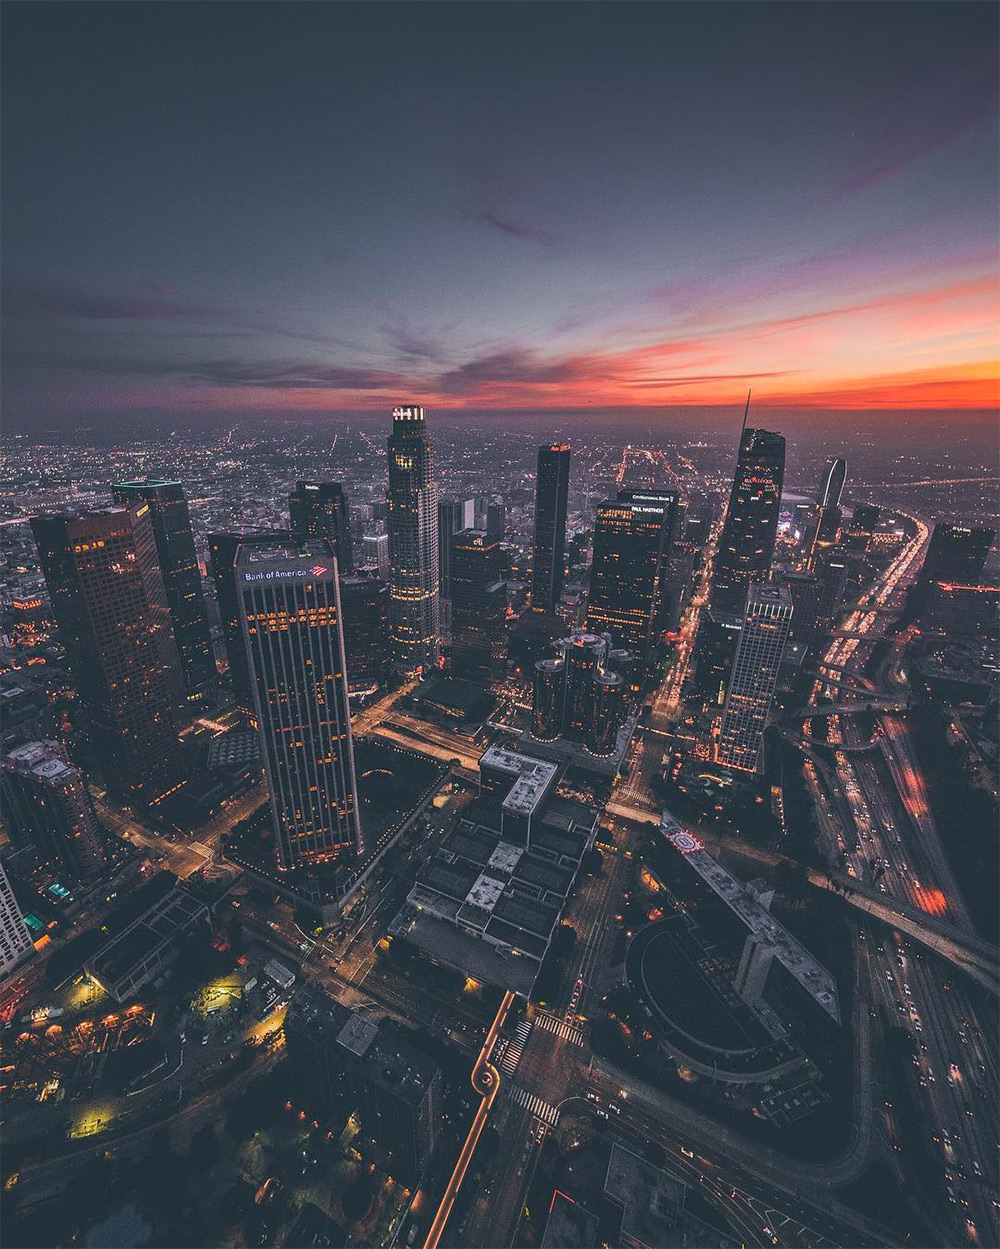 sky high images of los angeles at dusk and dawn by dylan schwartz